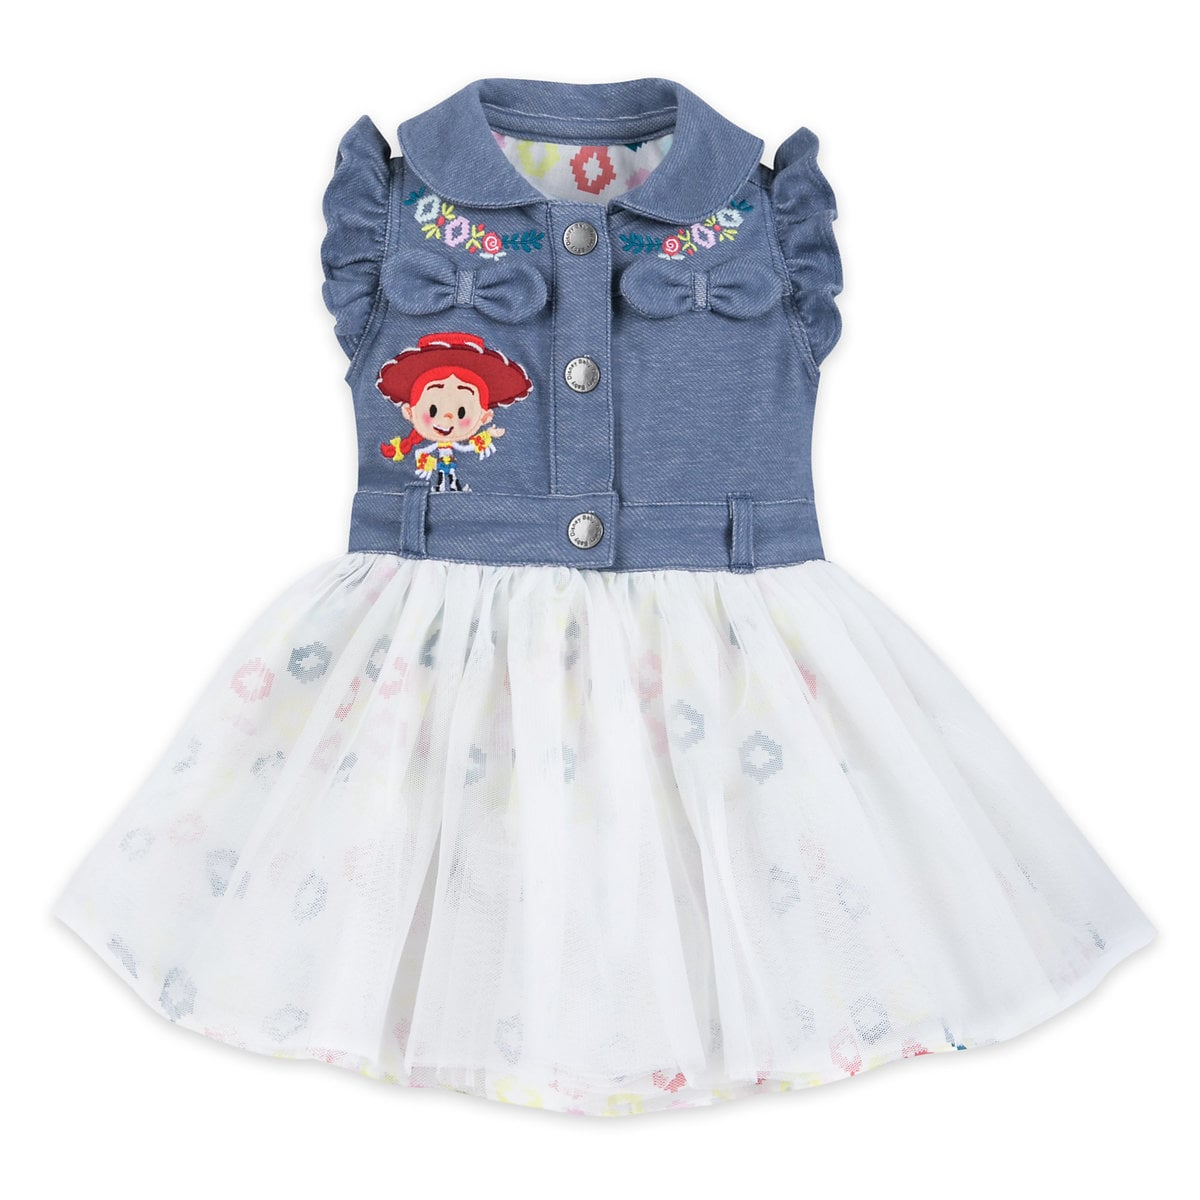 Top 25 Disney Gift Ideas for Babies featured by top US Disney blogger, Marcie and the Mouse: This Toy Story dress for babies is adorable